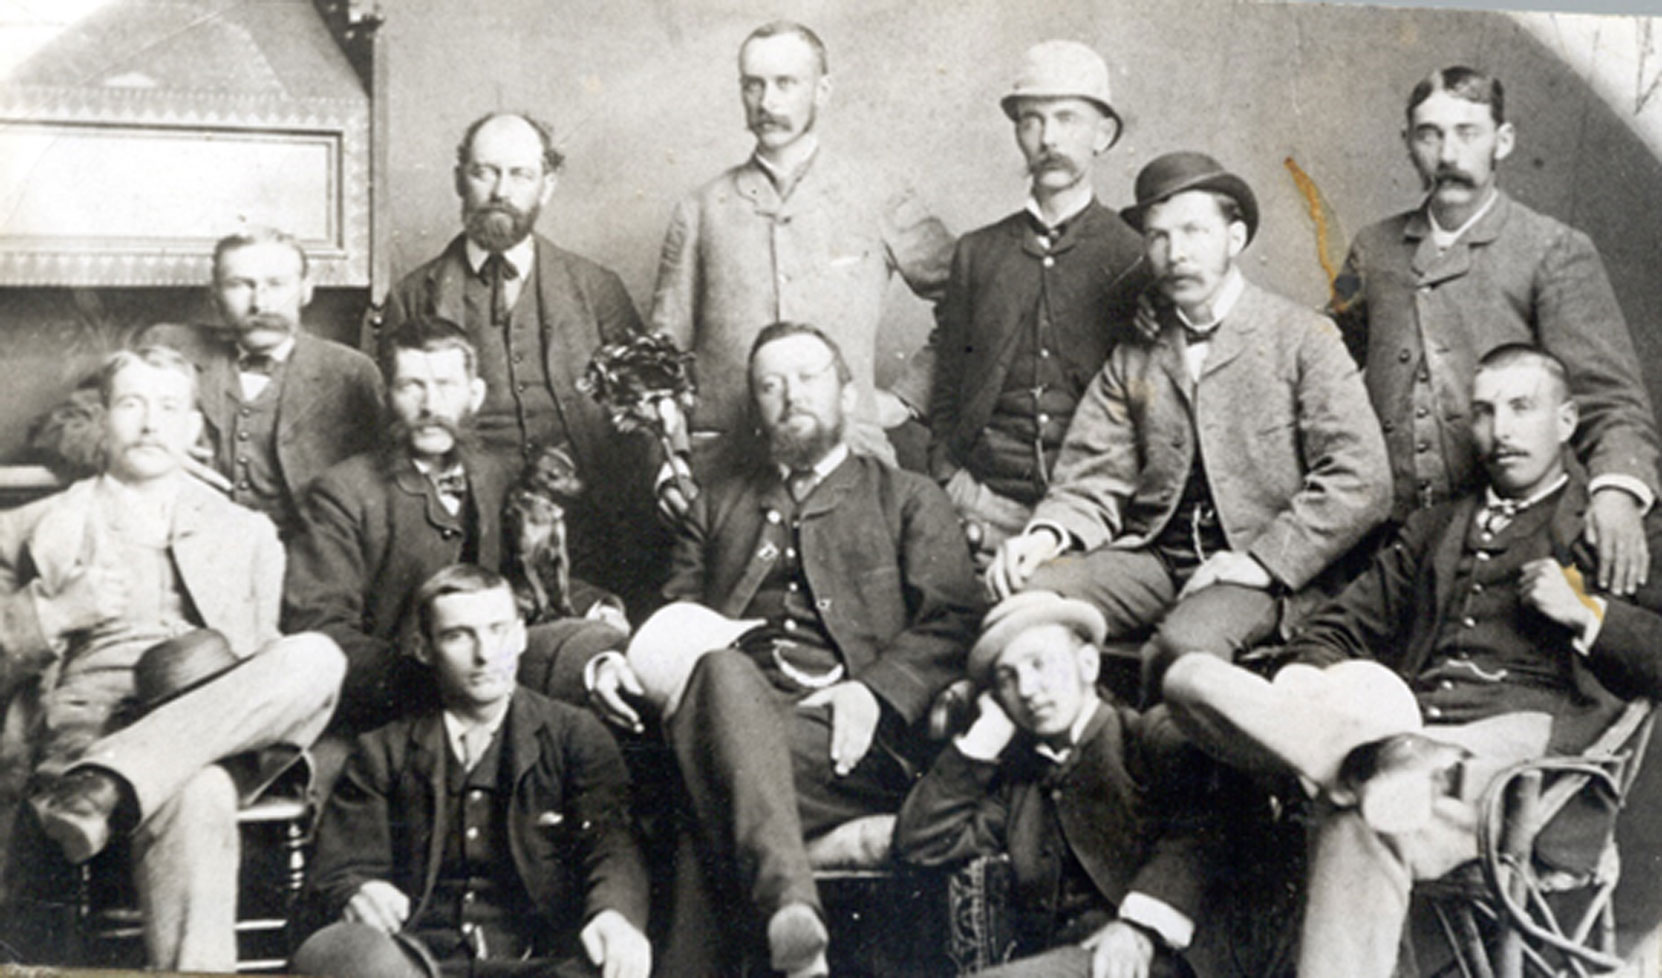 The Owen Sound Board of Trade, circa 1880. Robert Butchart, aged 23, is standing at the extreme right. Standing (left to right): Charles Conklin, Mr. Coates, William Masson, W.B. Stephens, Robert Pim Butchart. Seated (left to right): J.R.Brown, George S. Kilbourn, George I. Inglis, William Brown, Joseph Maughn. Seated on floor (left to right): unidentified, John C. Crane George S. Kilbourn bought shares of the Owen Sound Portland Cement Company in 1895 and remained a shareholder until the company was sold in 1909. Kilbourn also served as the company's Secretary and Treasurer from 1895 to 1909.) William Masson owned 2 shares of the Owen Sound Portland Cement Company from 1892 to 1896) (photo: Grey Roots Museum and Archives)